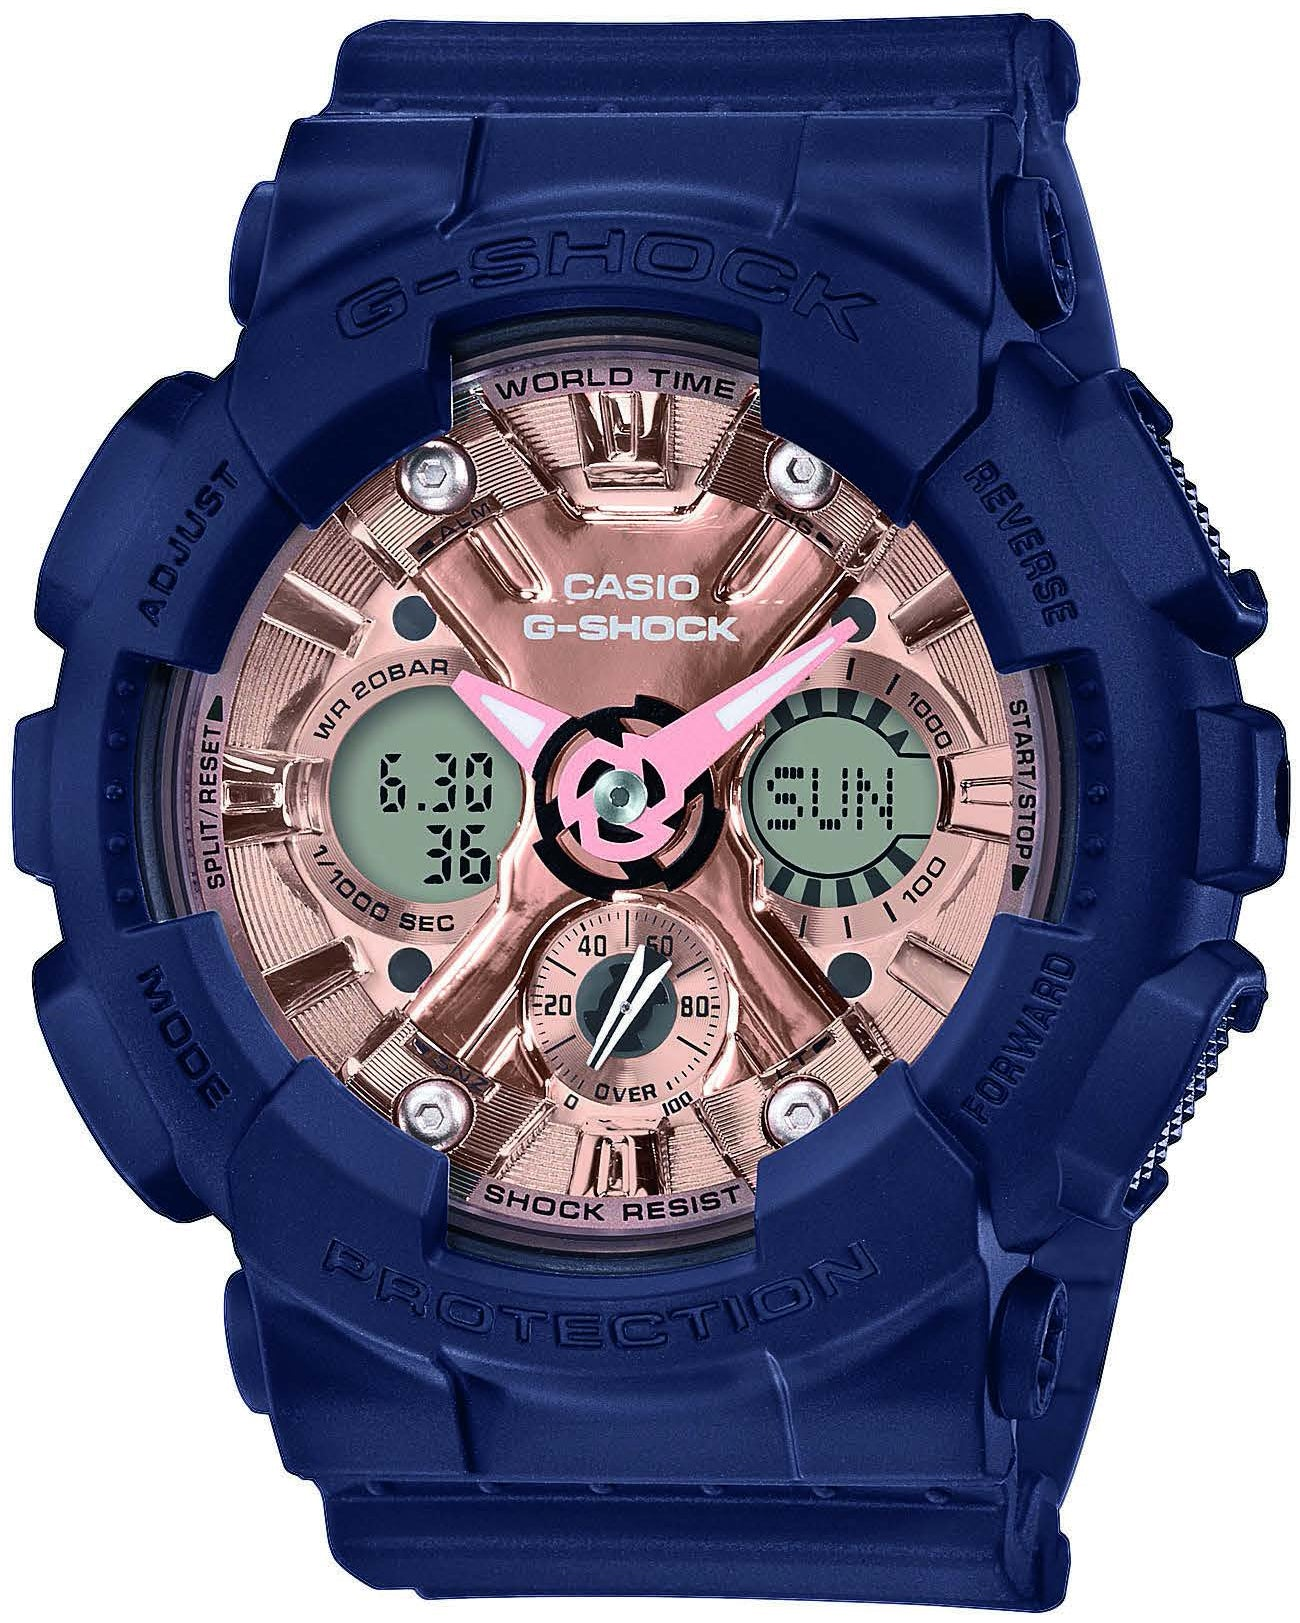 Casio G-Shock GMA-S120MF-2A2ER kello